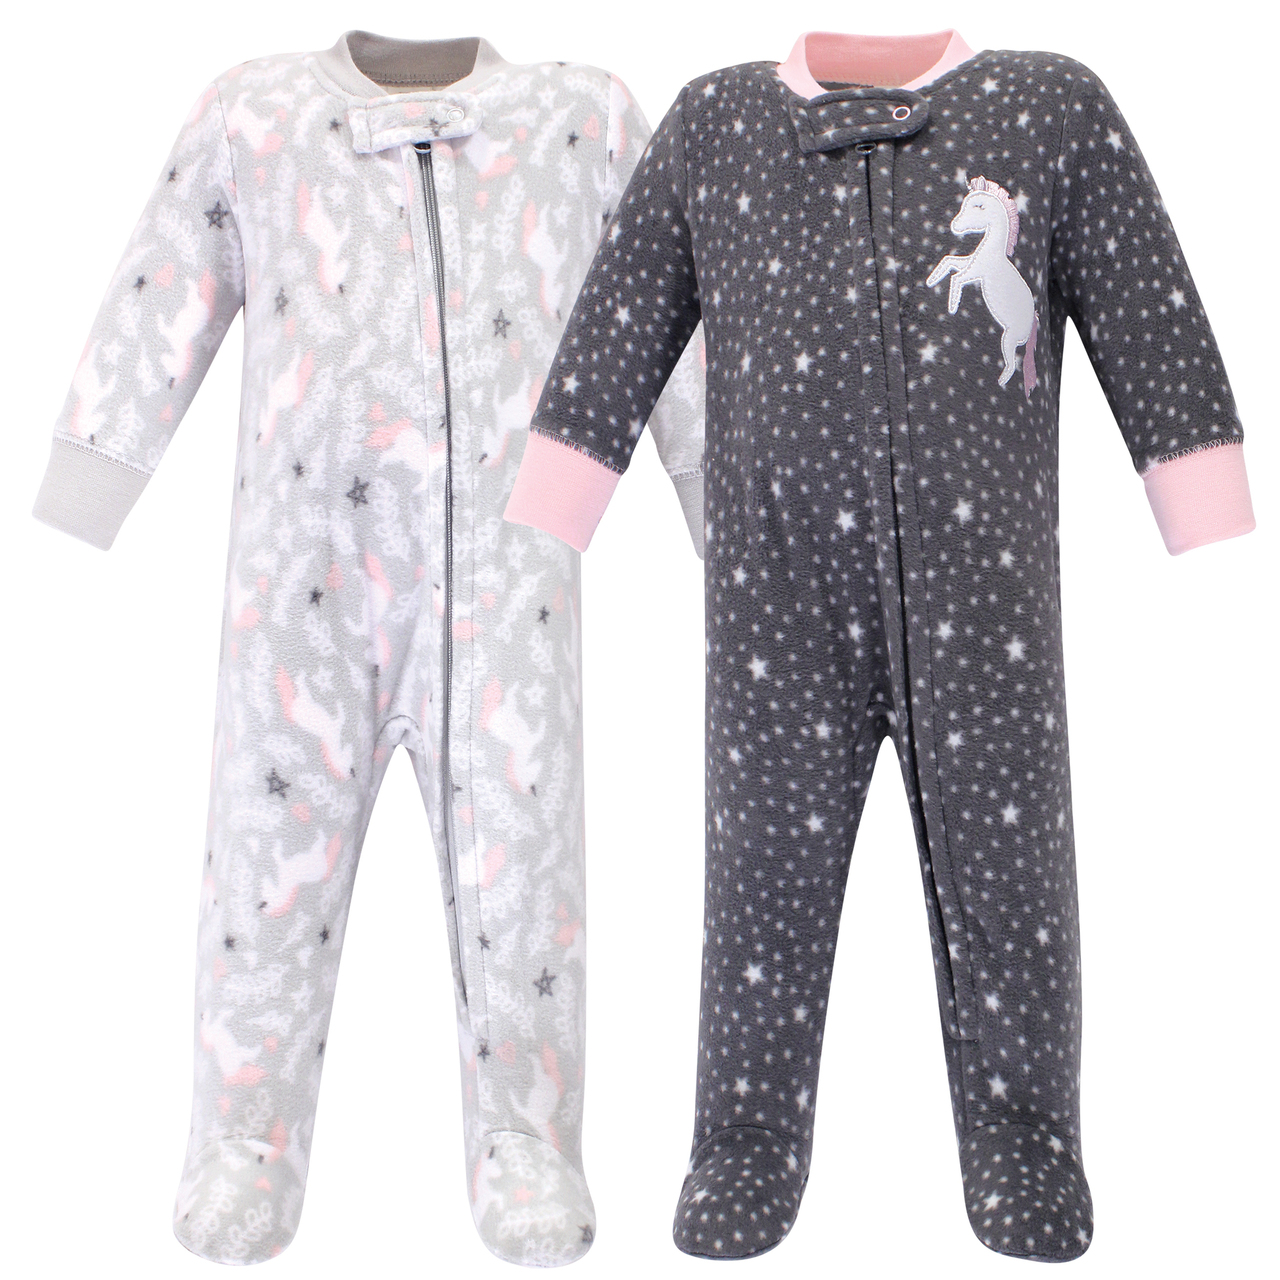 Essentials Baby Girls 2-Pack Sleep and Play